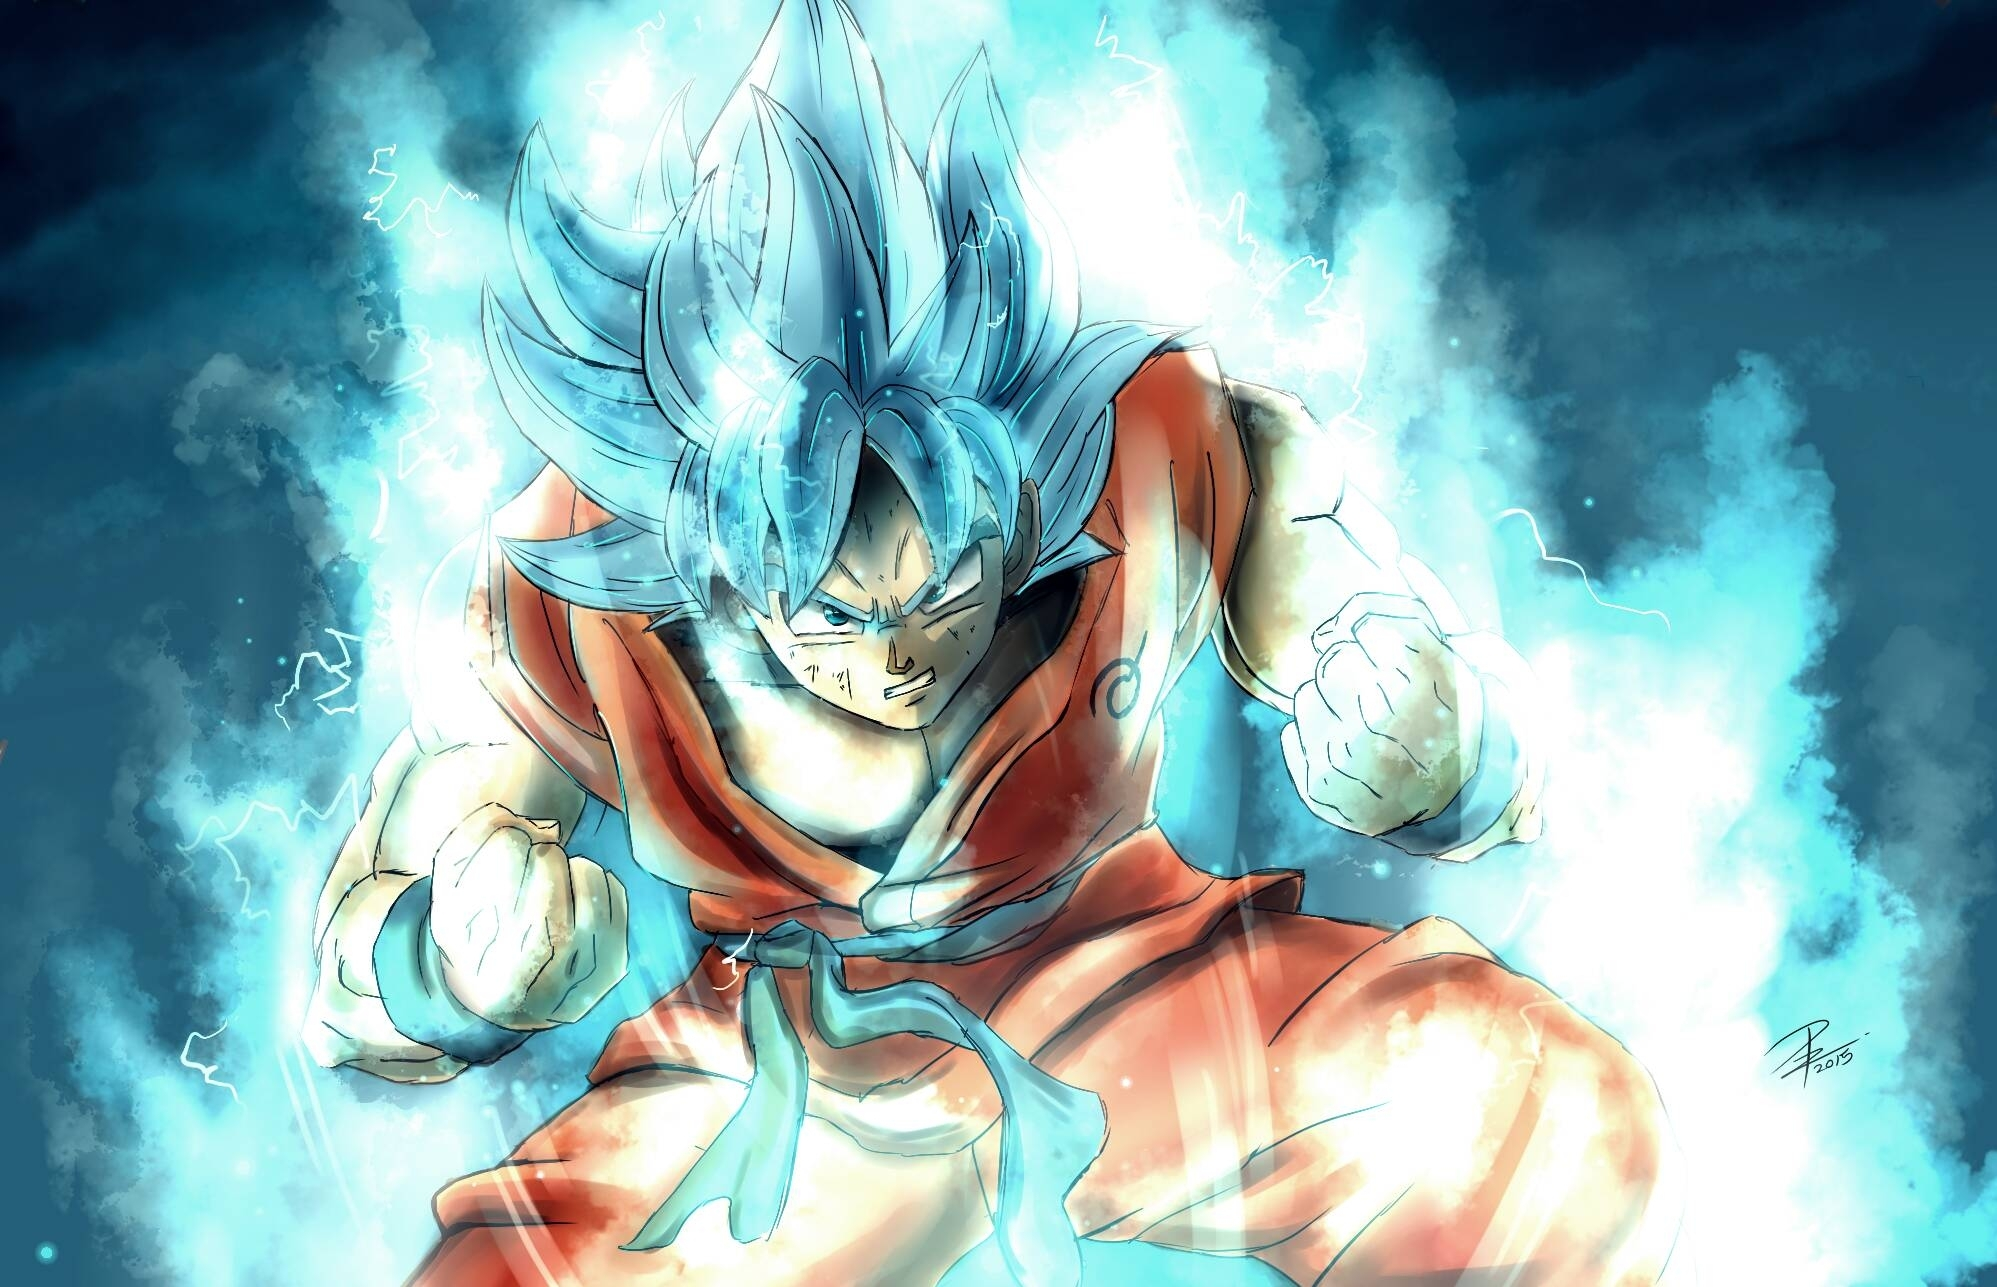 40 super saiyan blue fonds d'écran hd | arrière-plans - wallpaper abyss